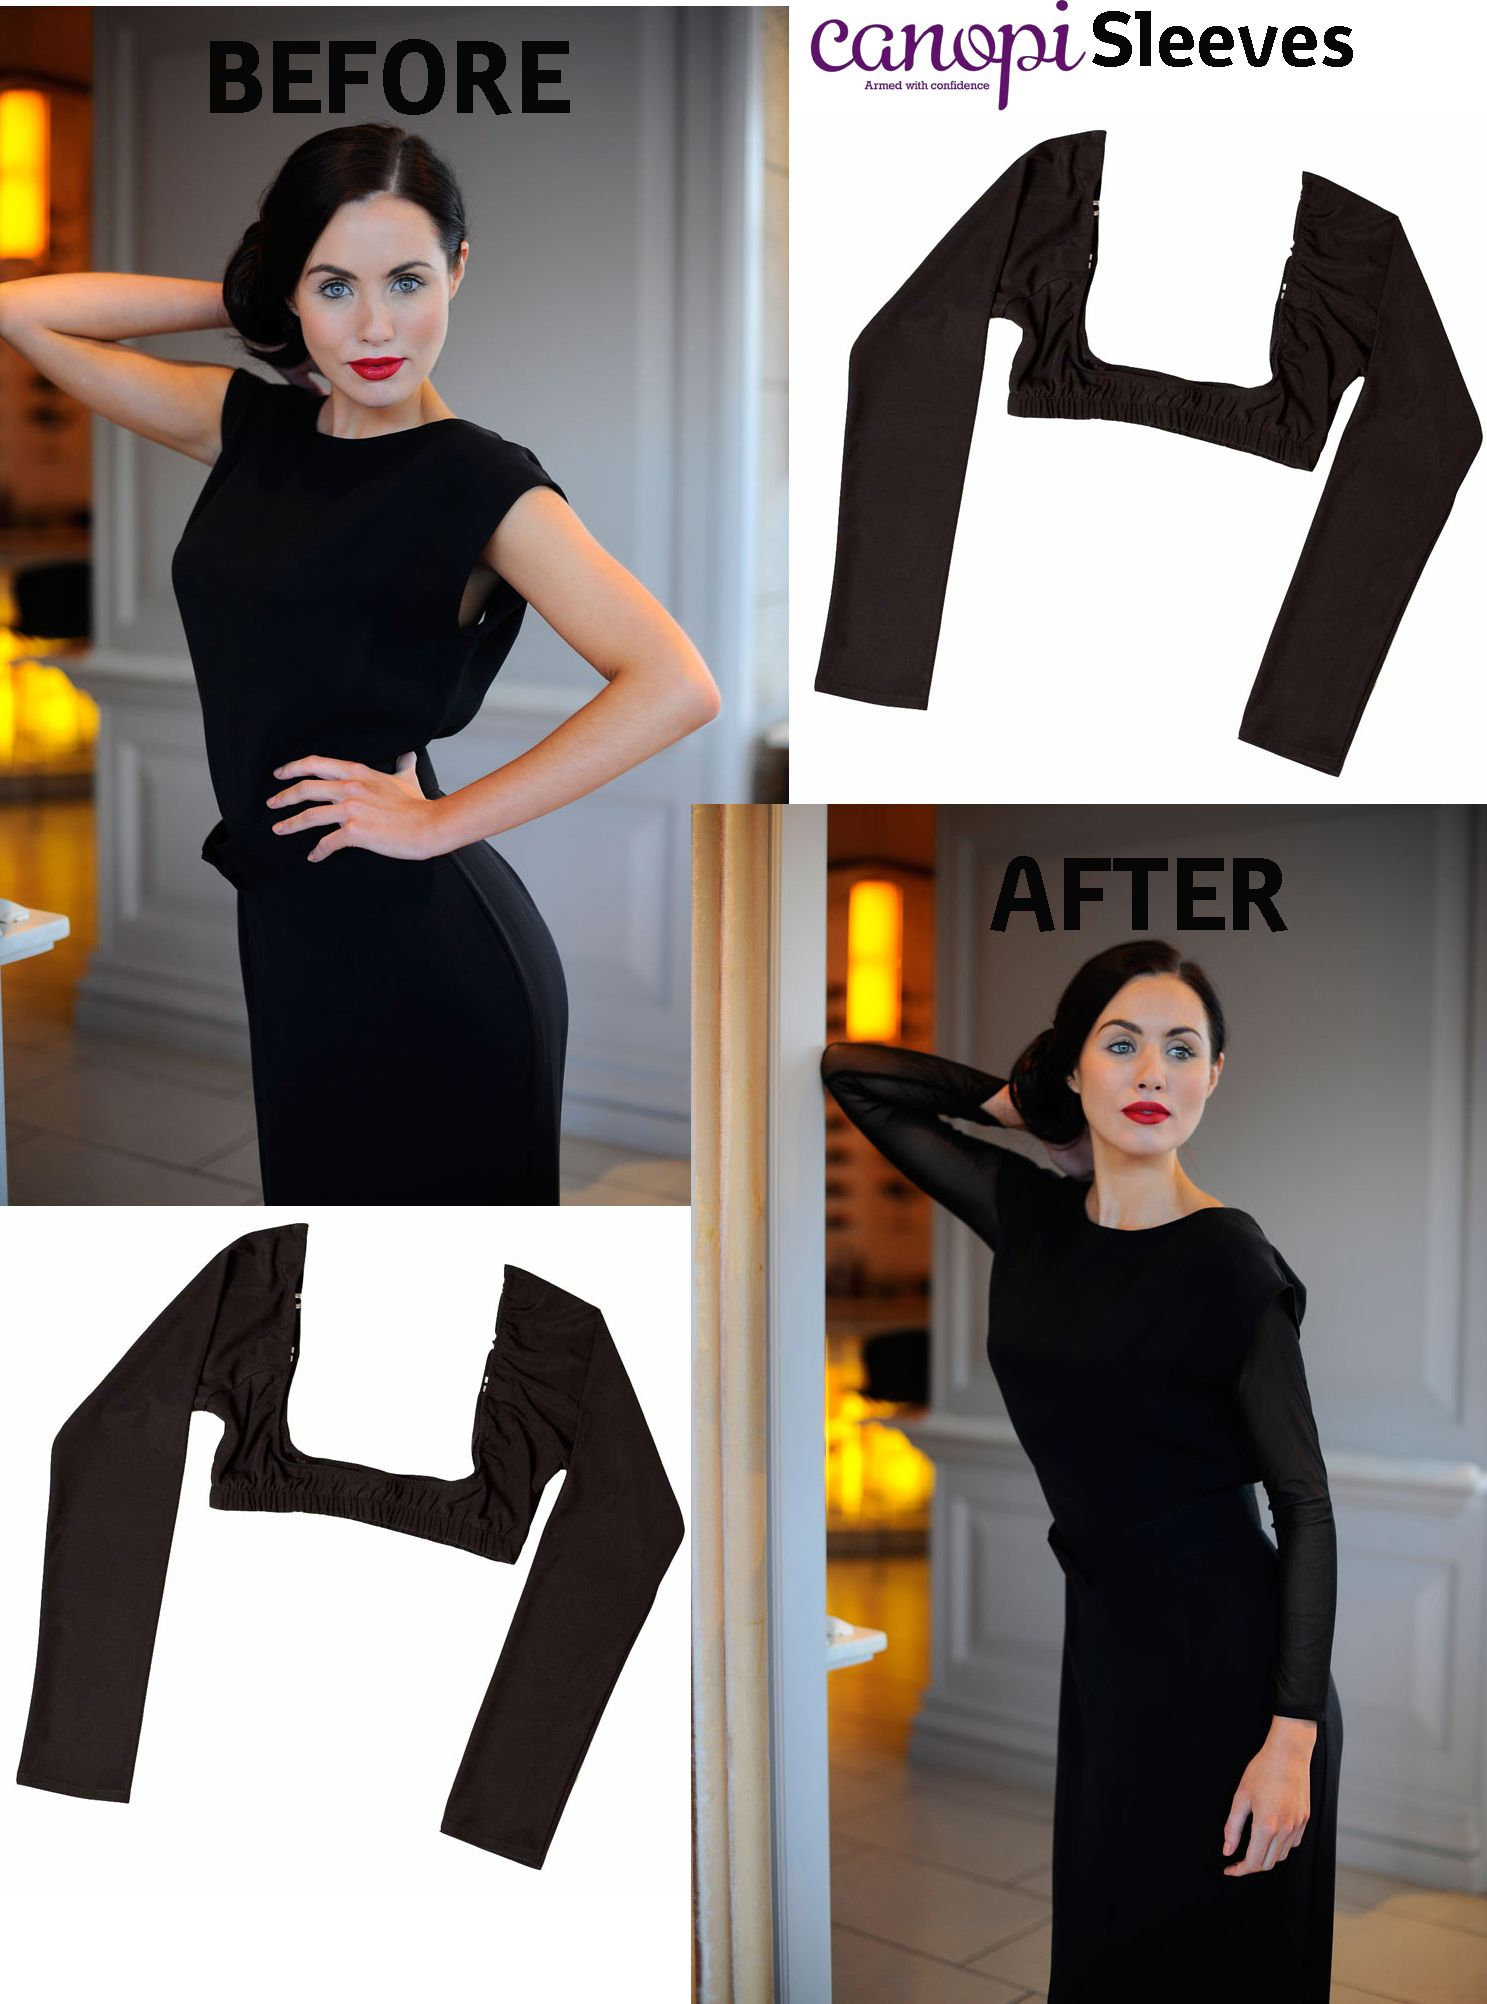 Canopi Sleeves A Simple Seamless Elegant Solution To Enable You To Wear That Sleeveless Dress